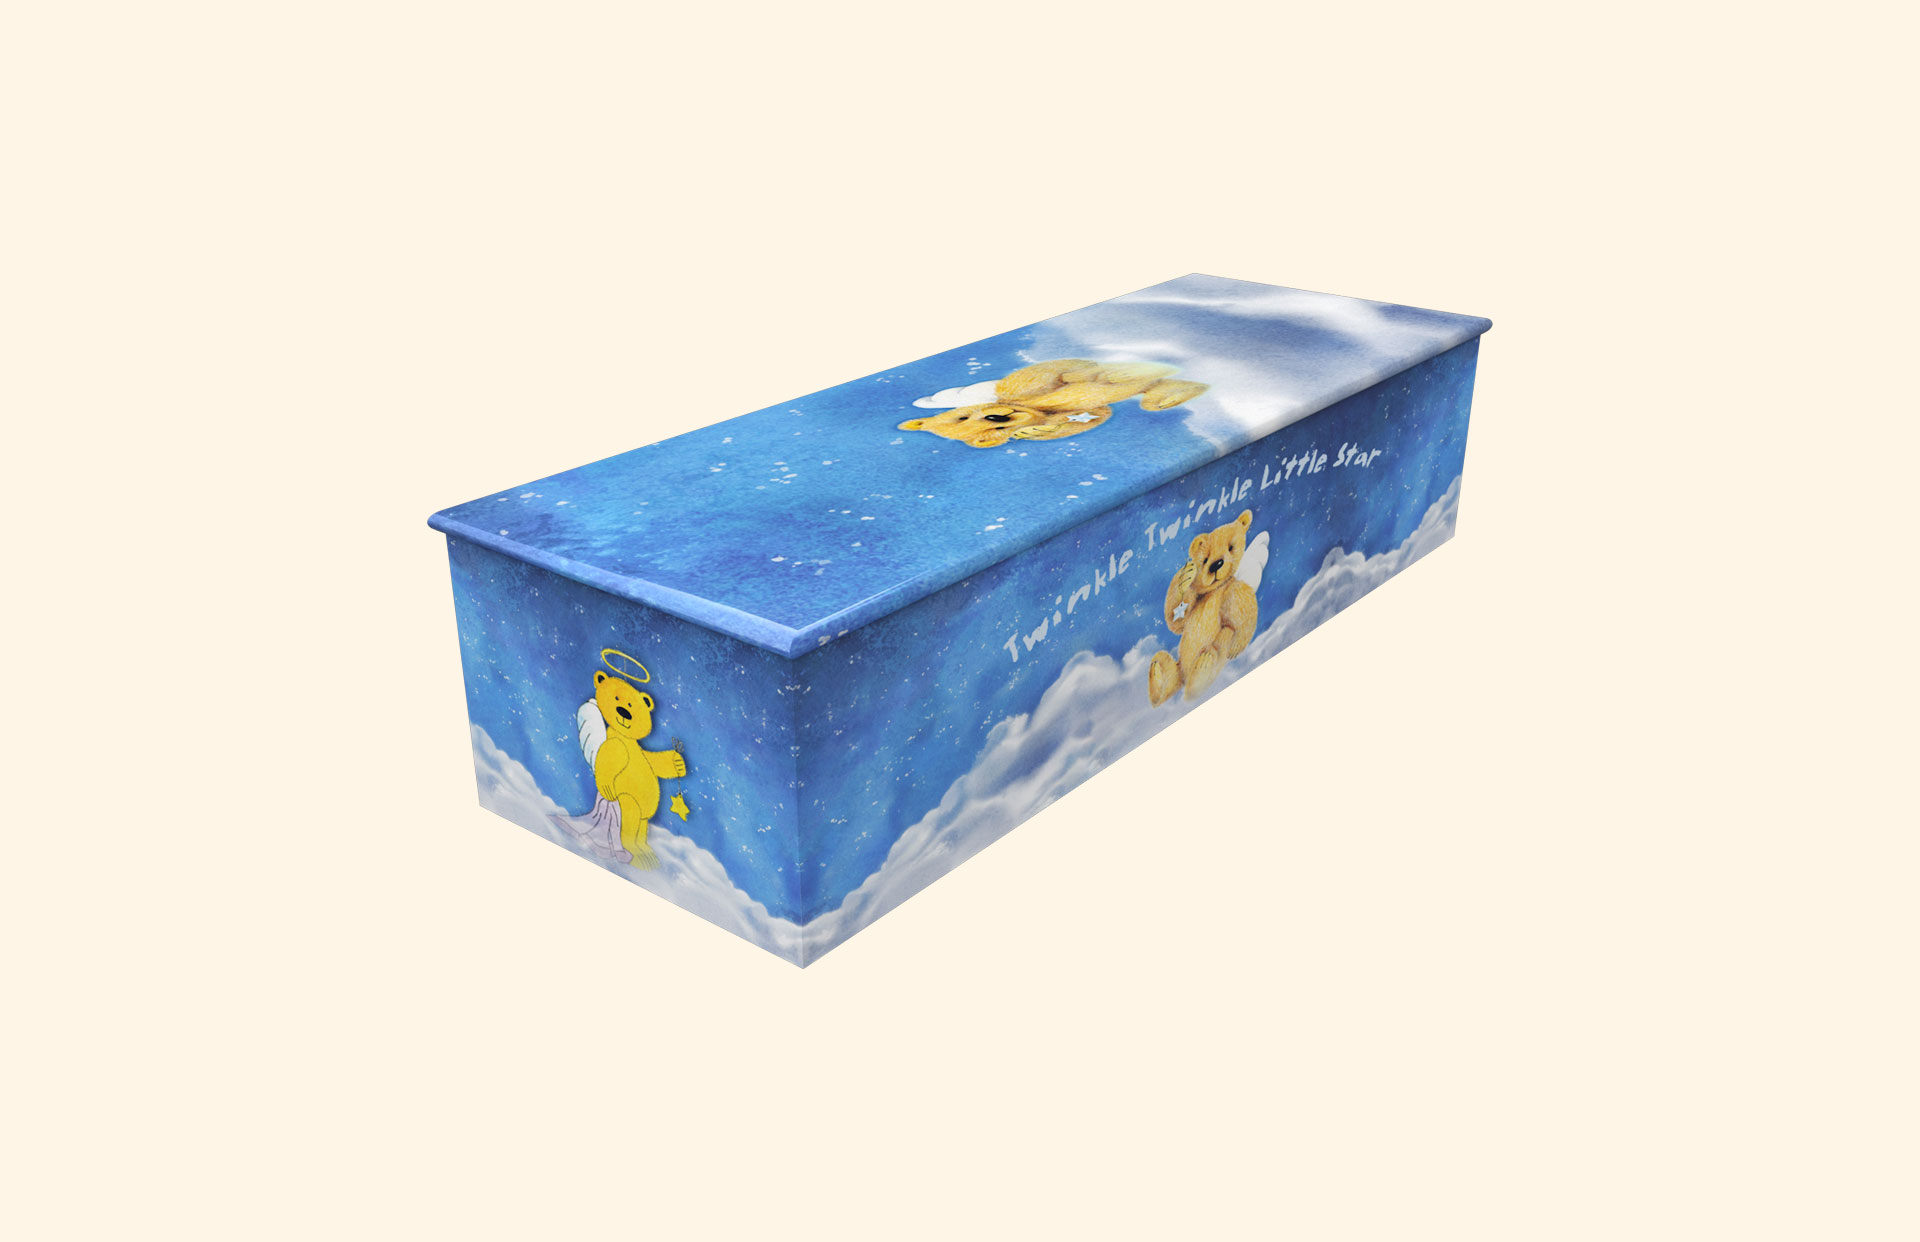 New Twinkle Twinkle Little Star Blue child casket